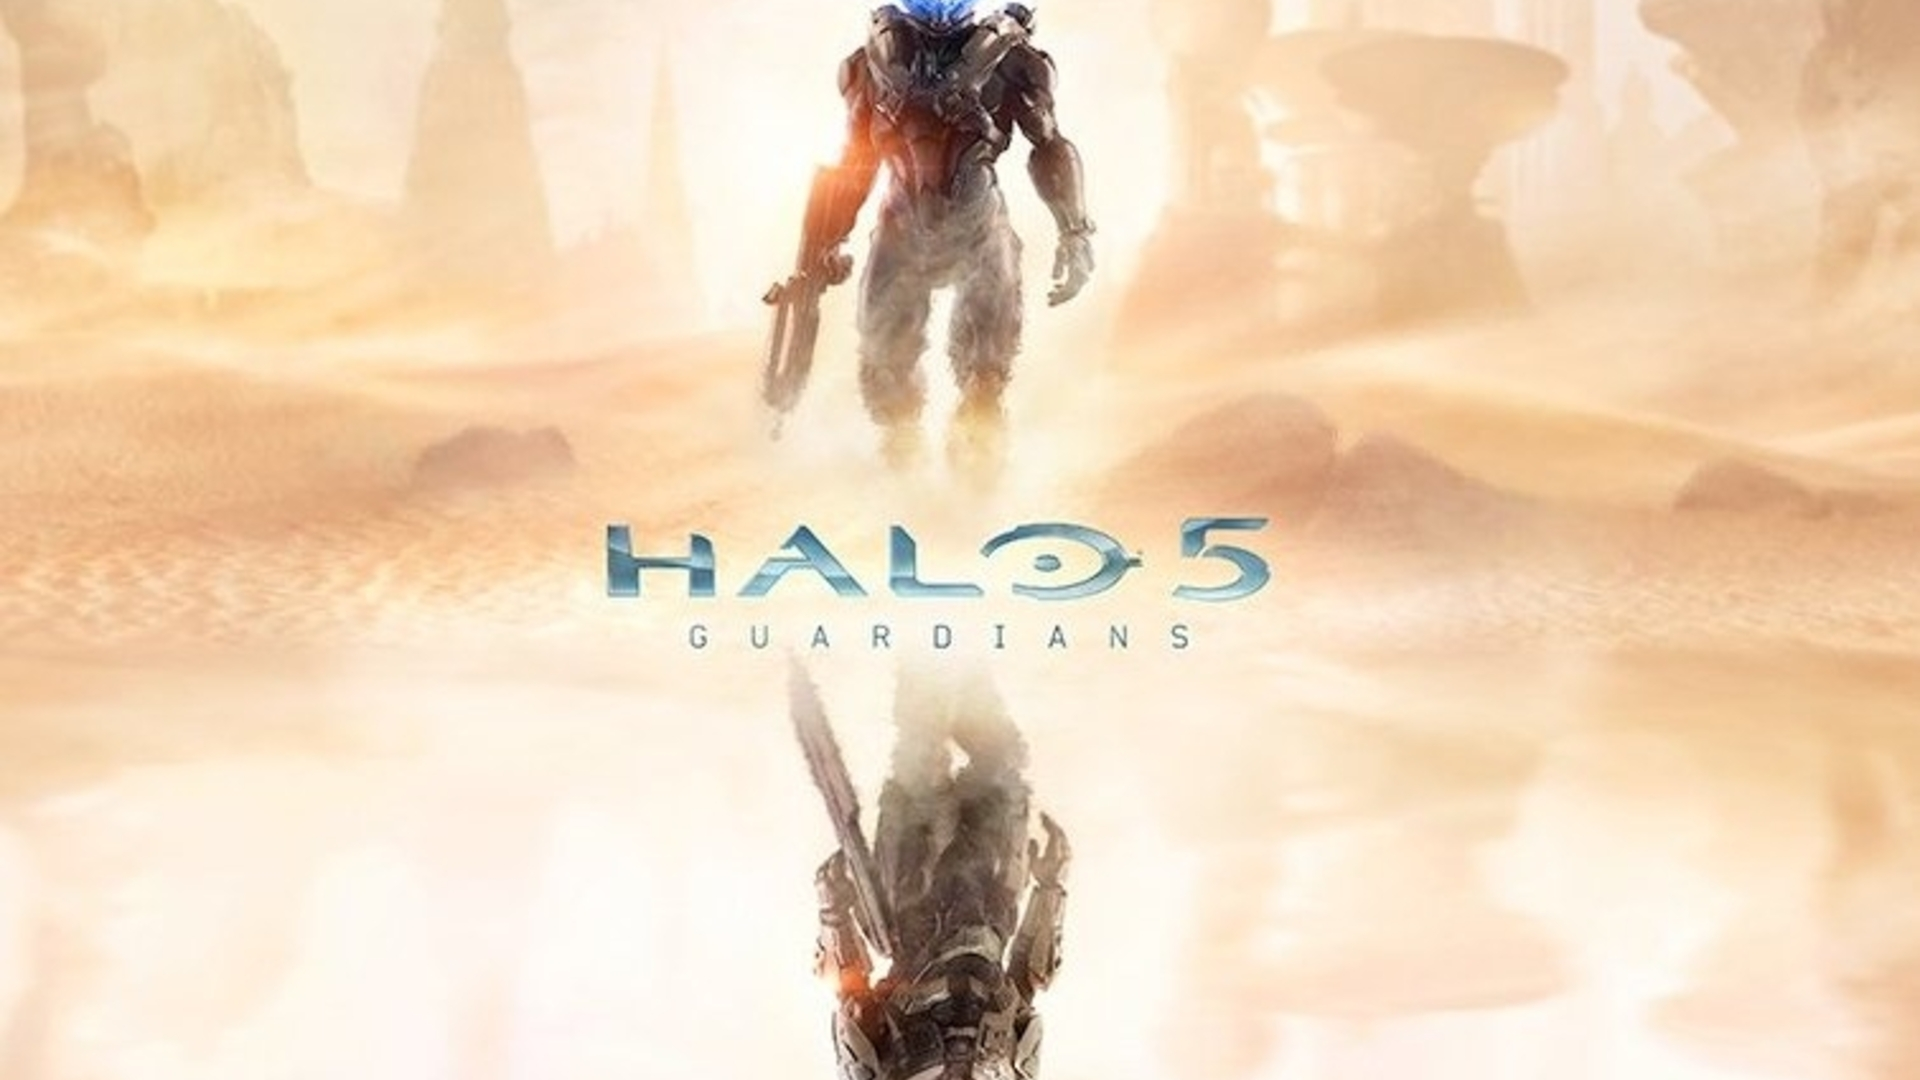 Diecisiete minutos del multijugador de Halo 5: Guardians